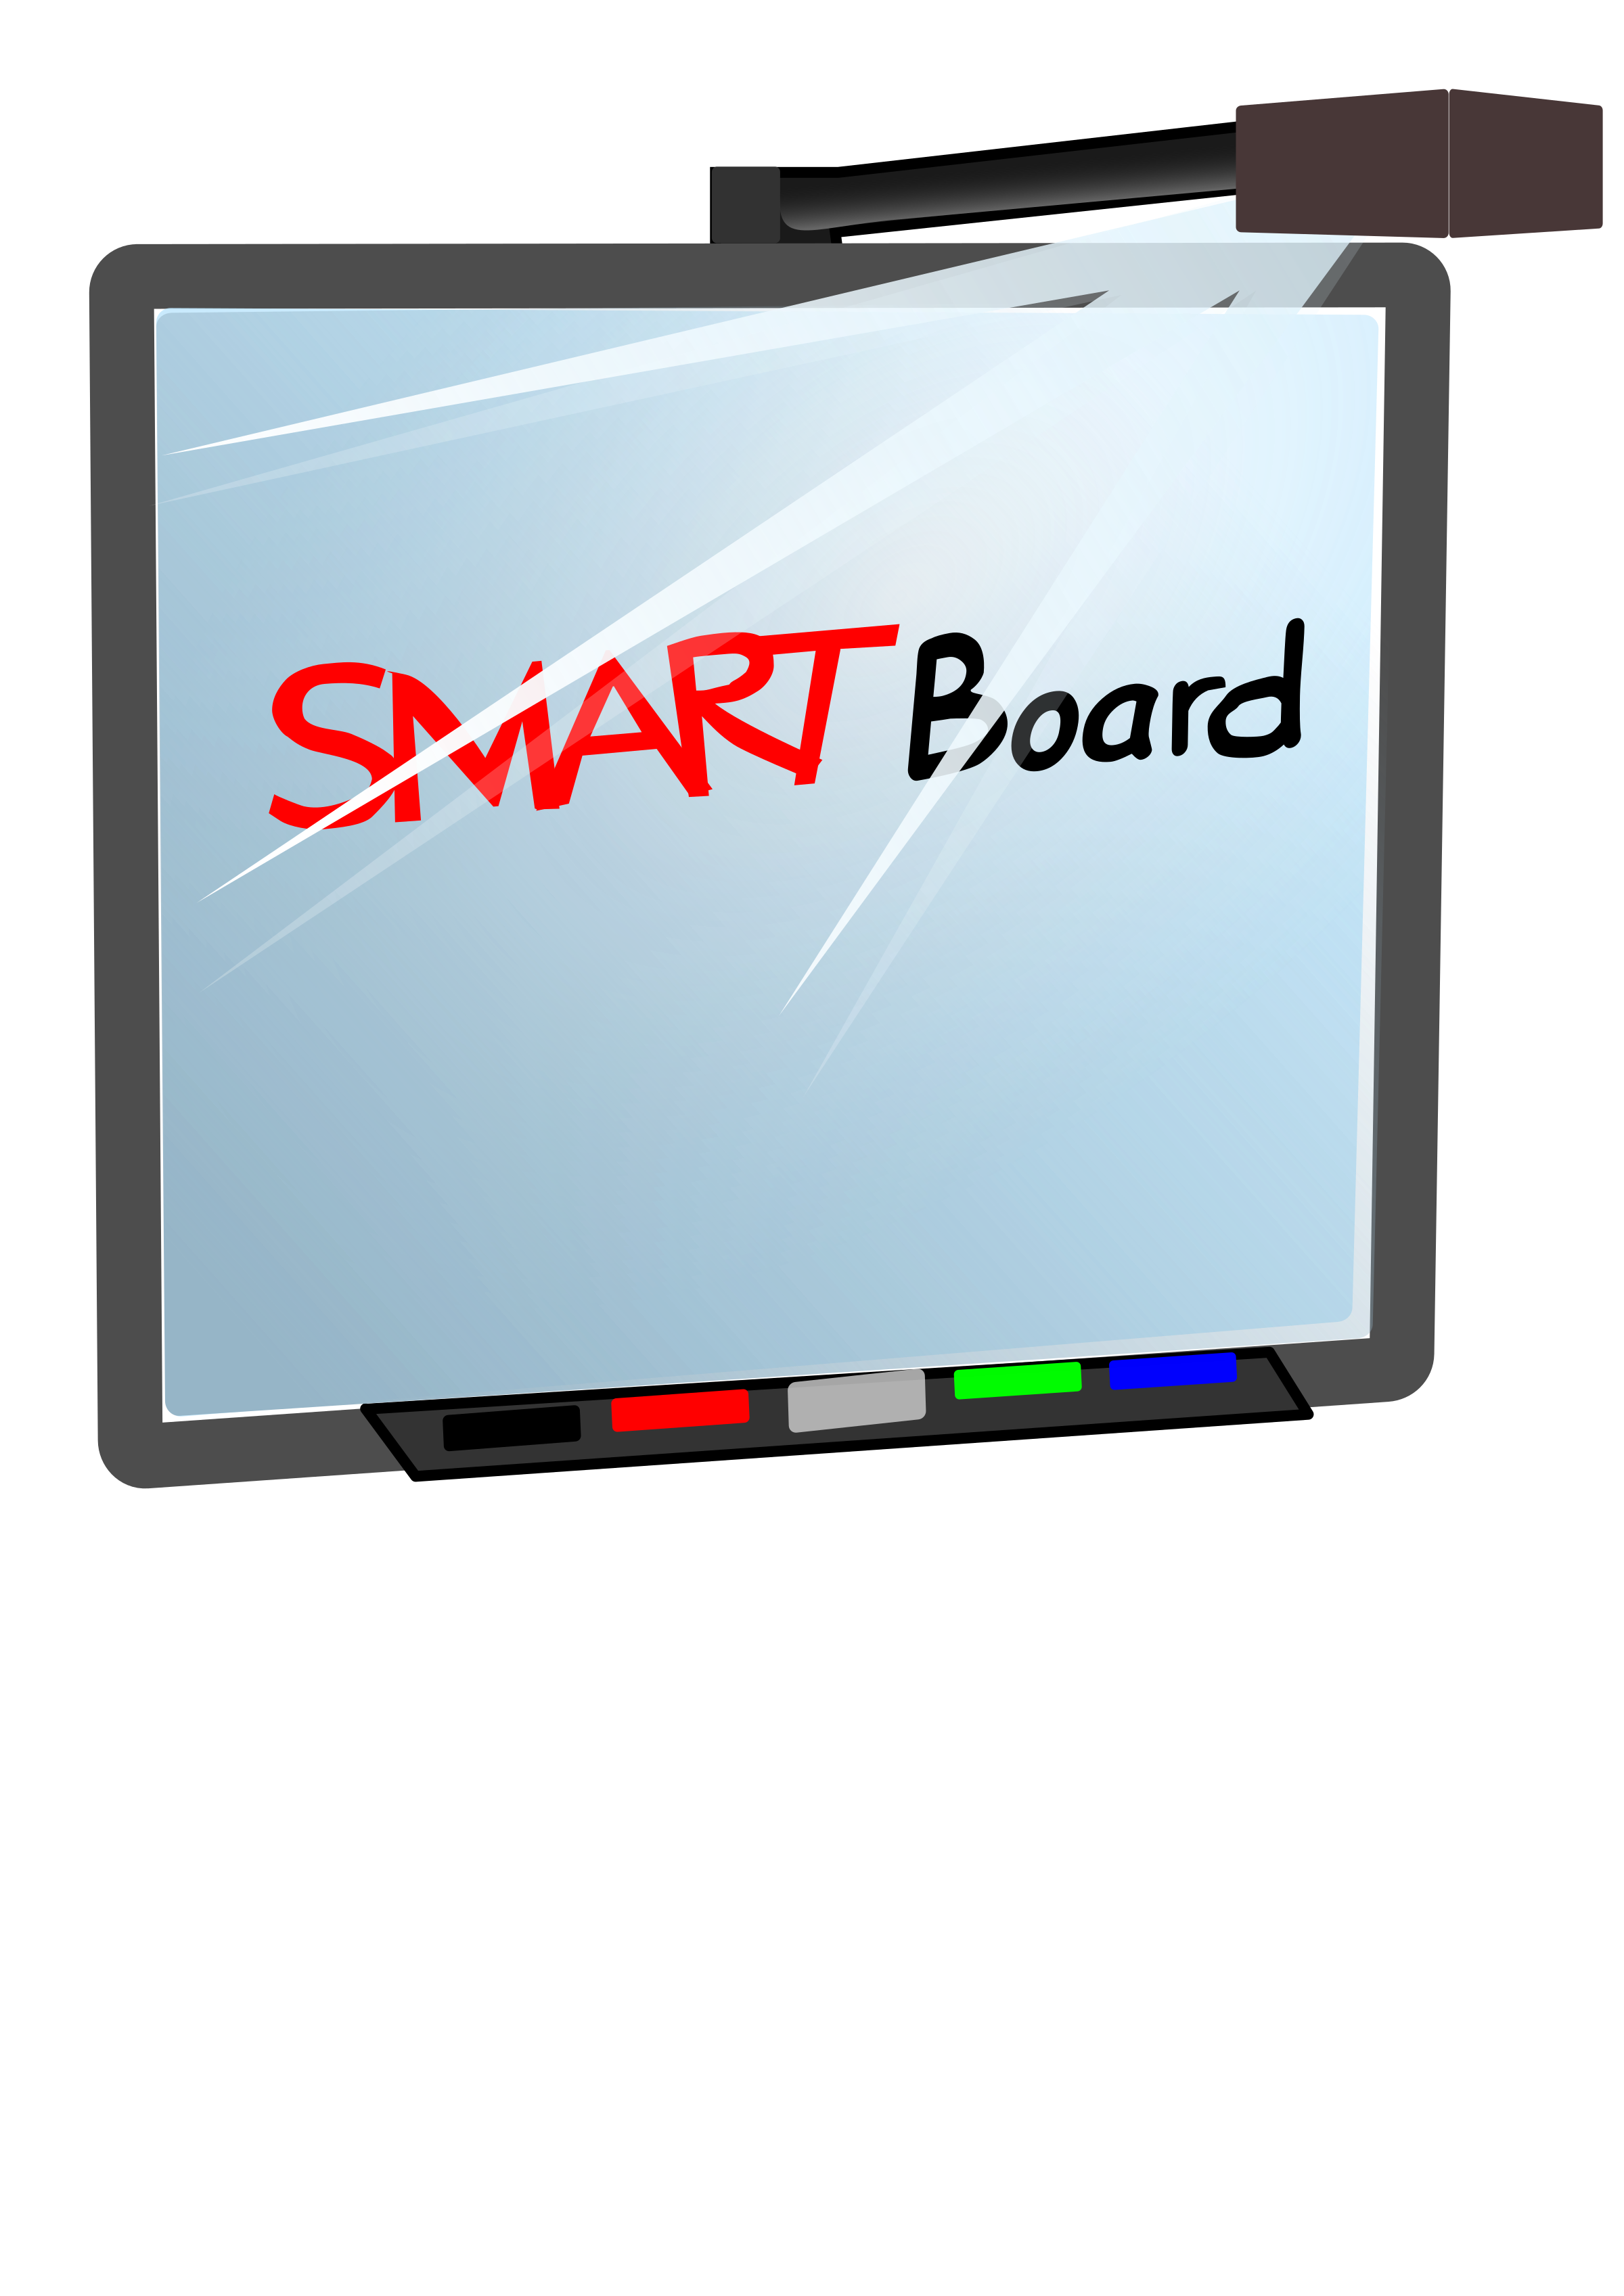 Interactive clipart for smartboard.